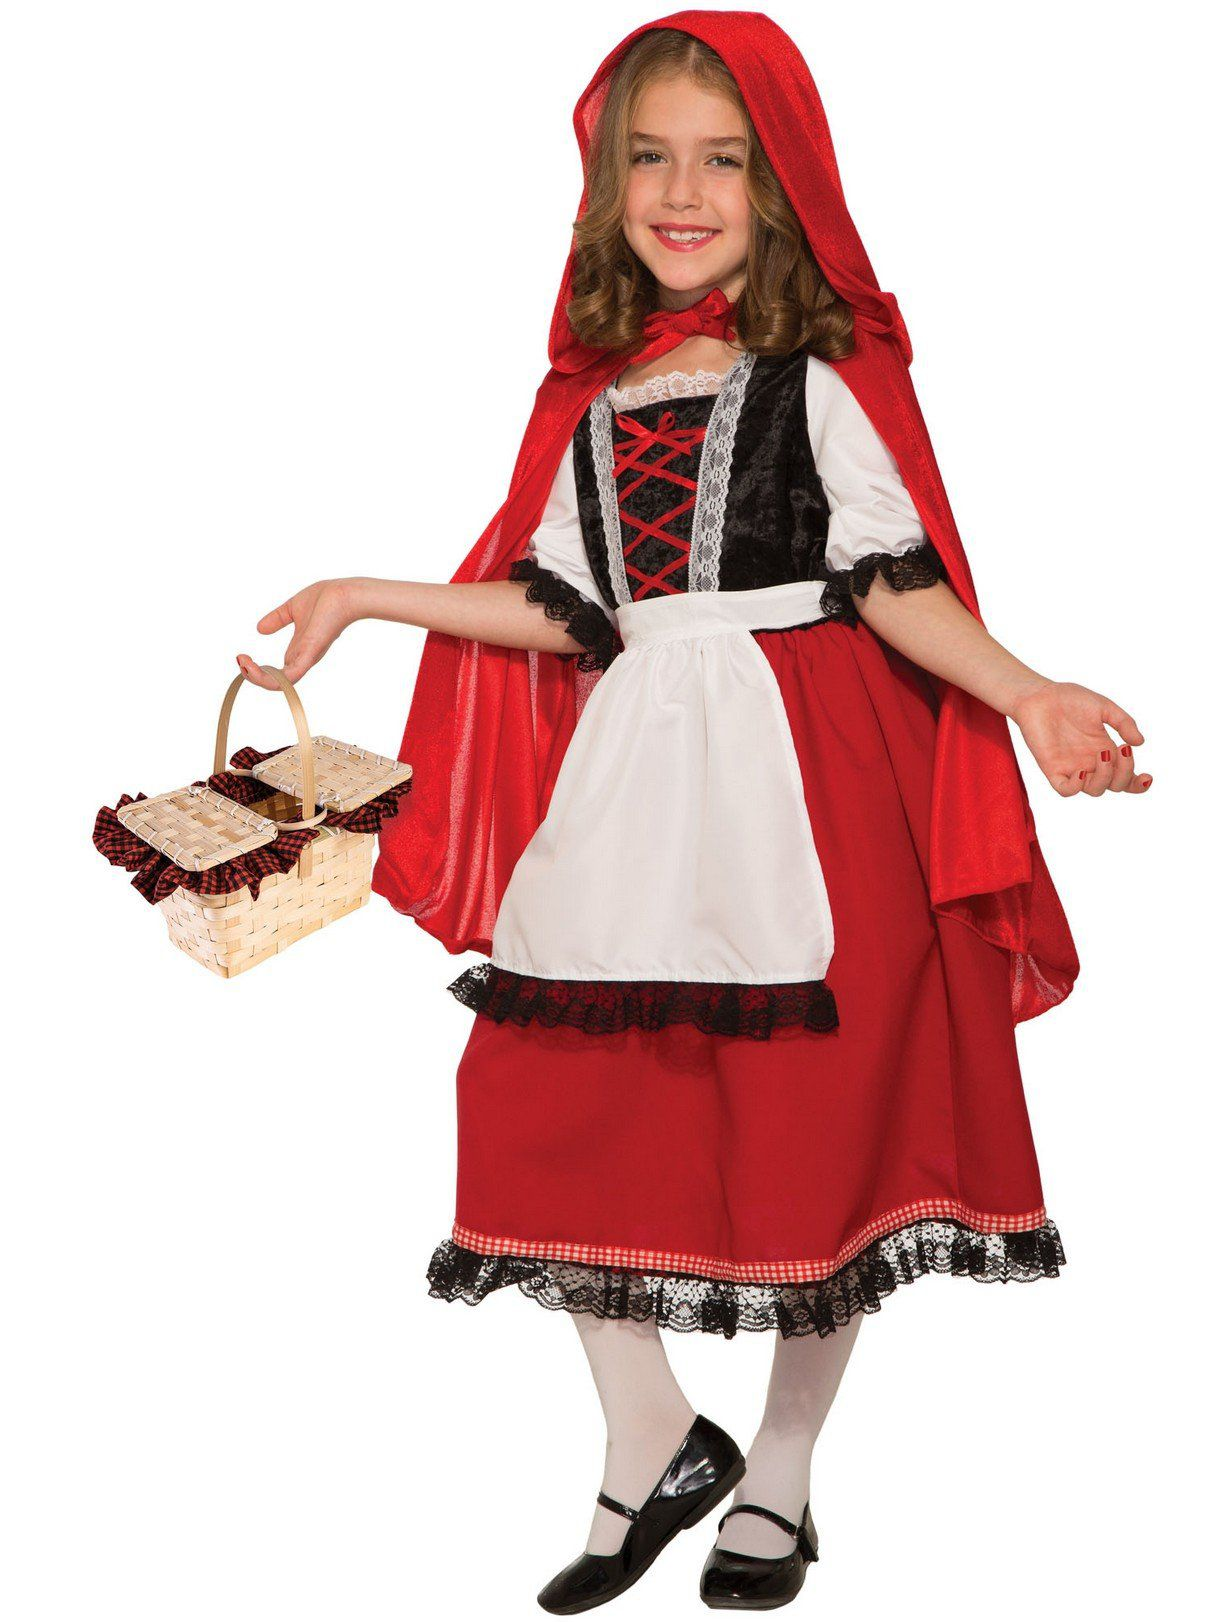 Red Riding Hood Deluxe Costume For Kids - Kids 2018 Halloween Costumes  Buycostumescom-6069